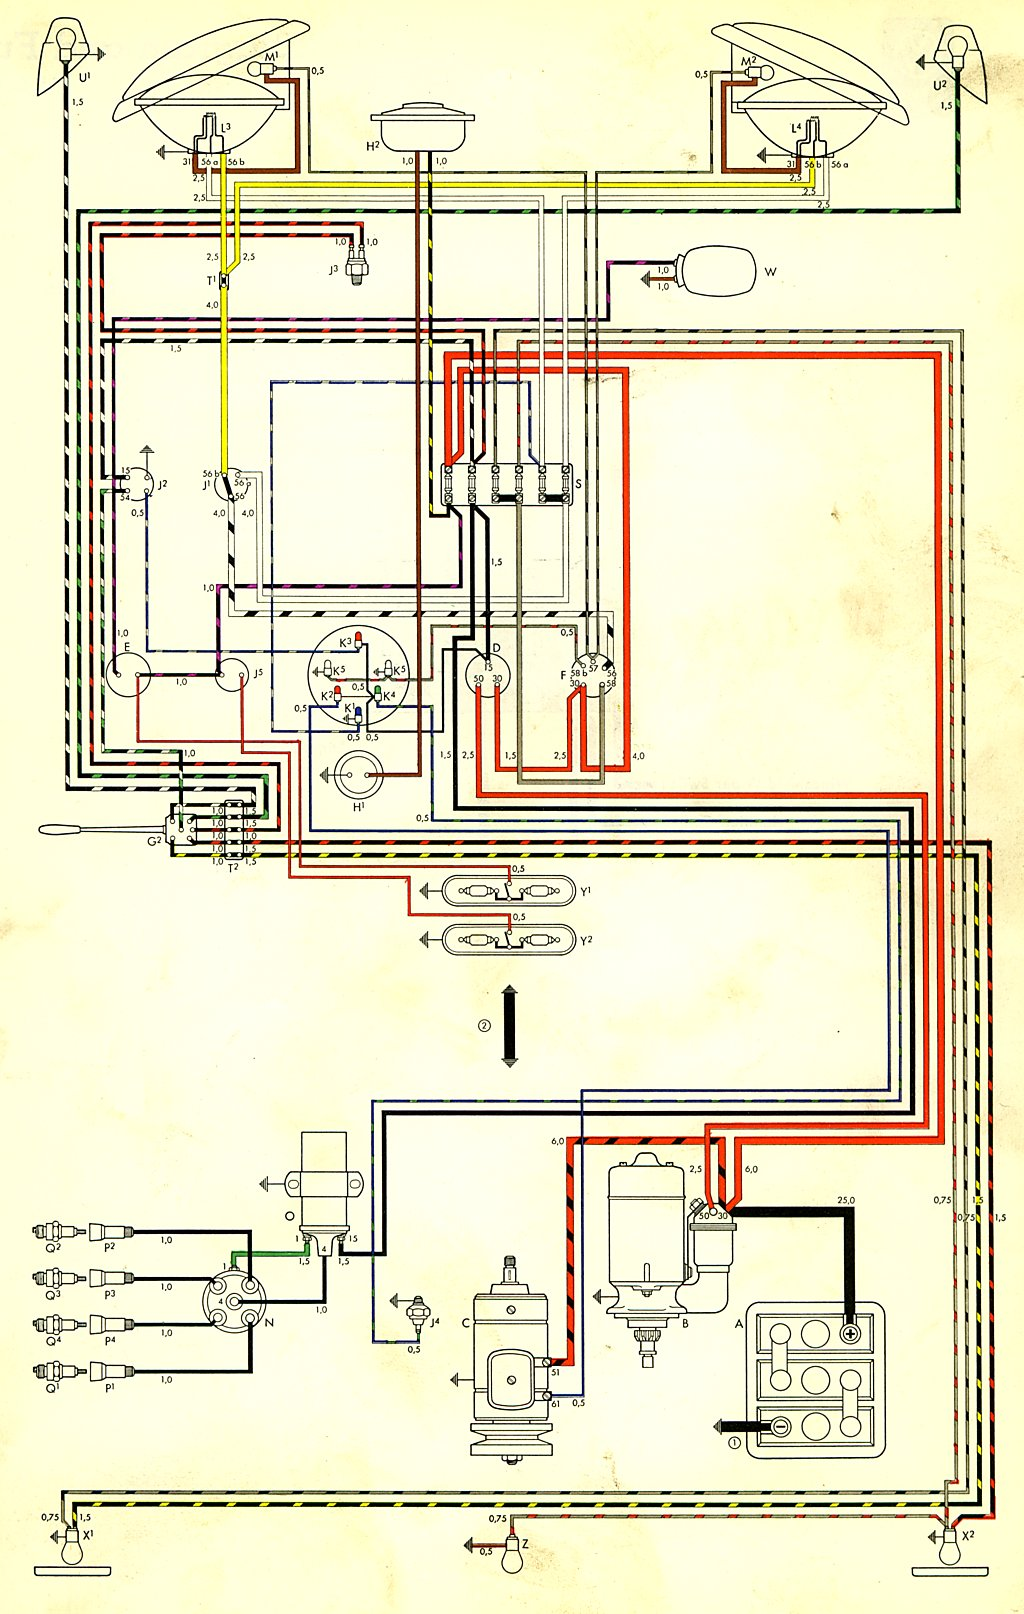 1959 bus wiring diagram usa thegoldenbug com rh thegoldenbug com VW Bus Wiring Diagram 1960 vw bus wiring diagram